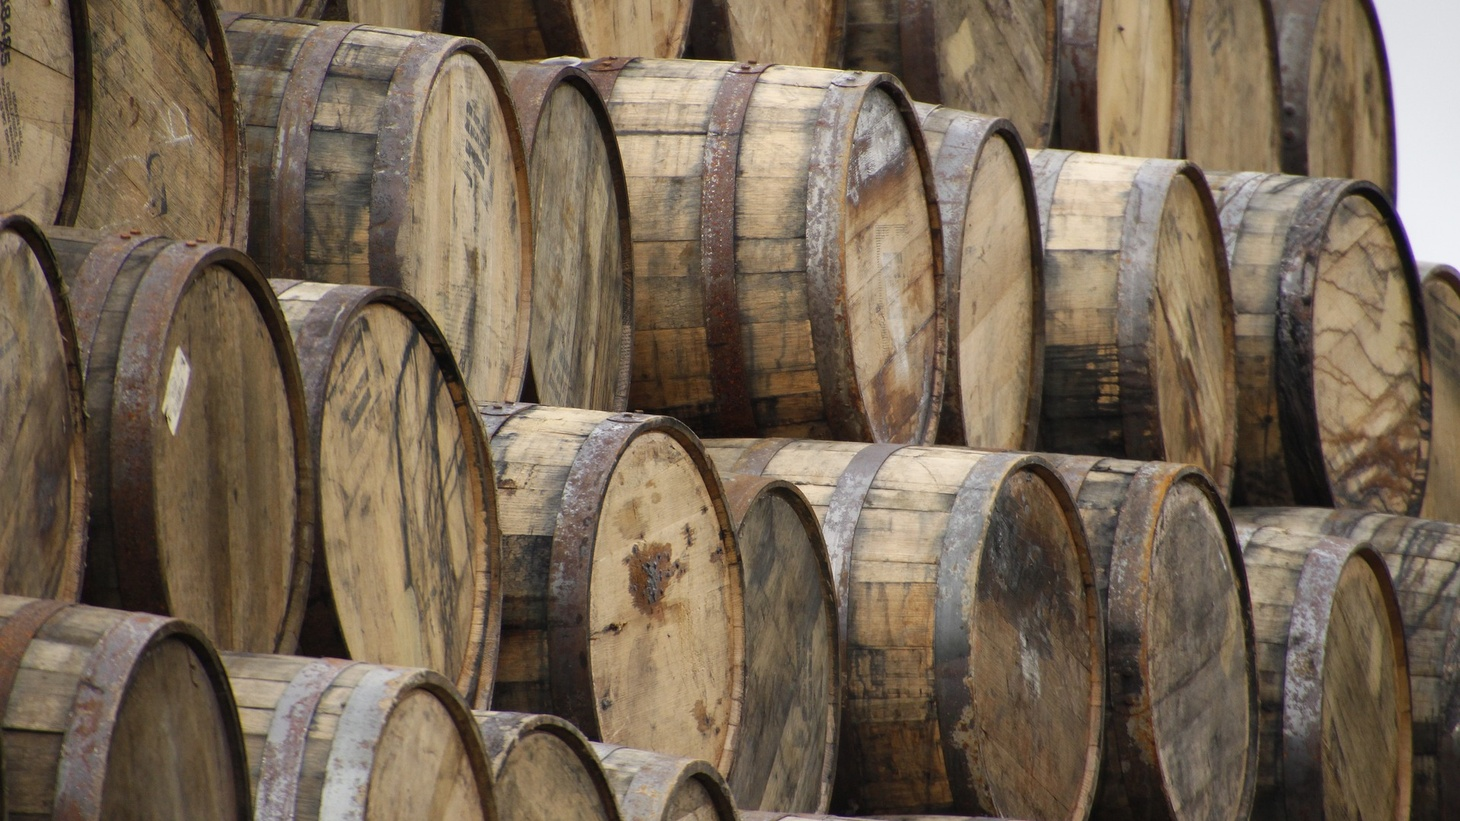 Wood biologist Artur Cisar-Erlach says that 80%of the flavor and color of whiskey comes directly from the wood barrel.